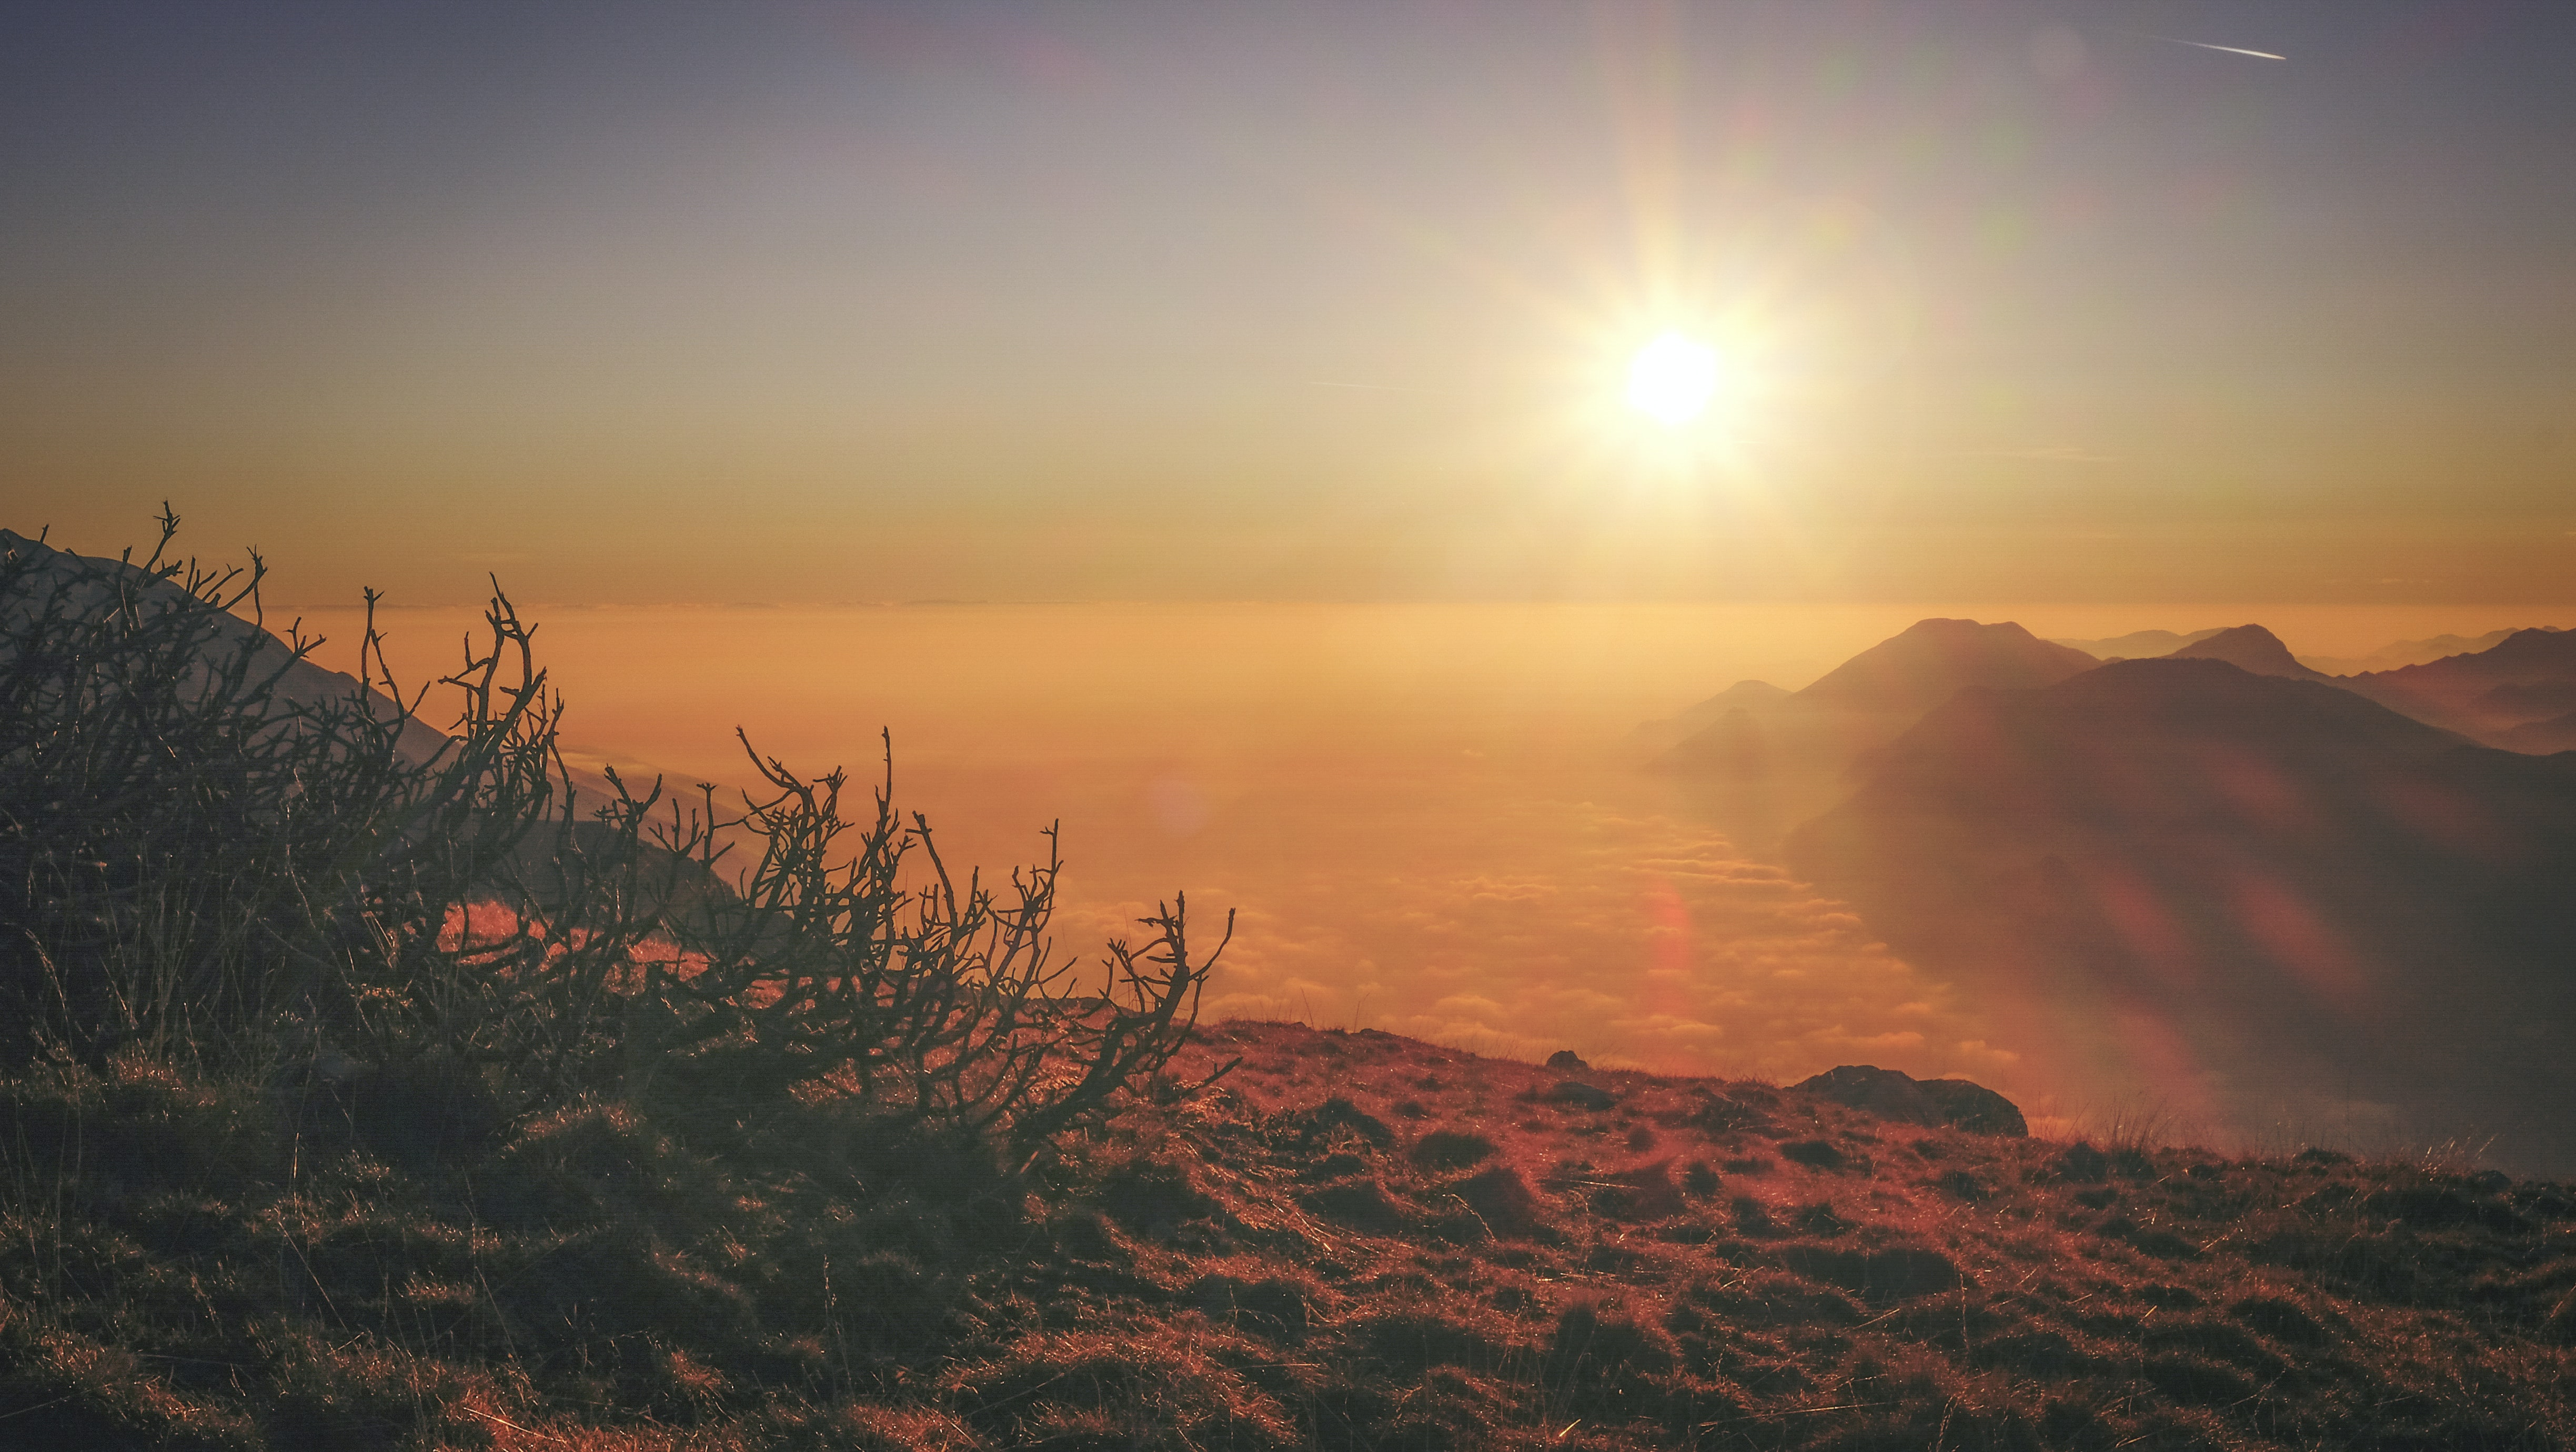 Sunrise shines on the desert fog and mountains in Monte Altissimo di Nago